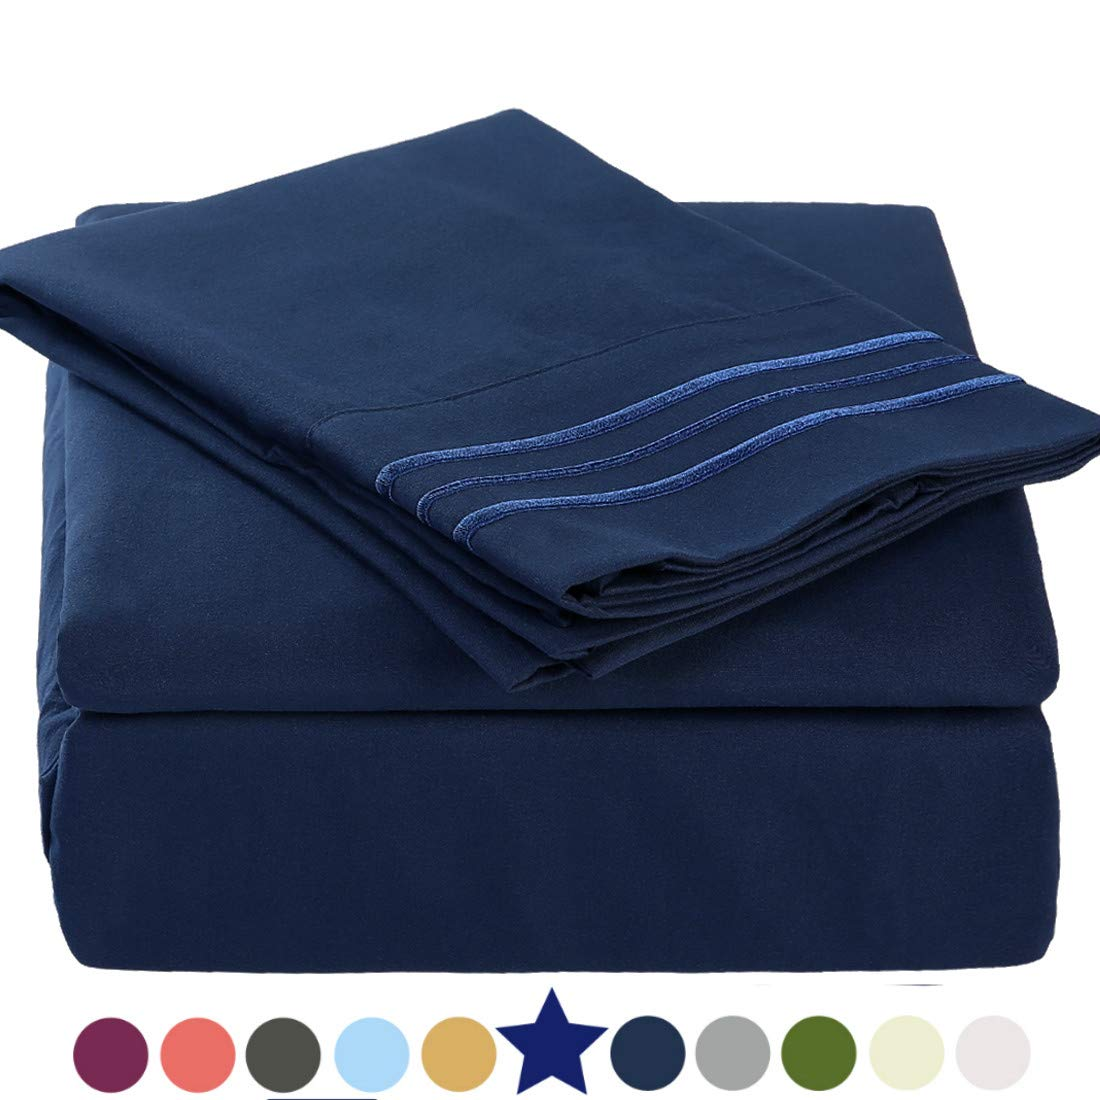 """TEKAMON Premium 3 Piece Bed Sheet Set 1800TC Bedding 100% Microfiber Polyester - Super Soft, Warm, Breathable, Cooling, Wrinkle and Fade Resistant - 10-16"""" Extra Deep Pockets, Twin, Navy Blue"""